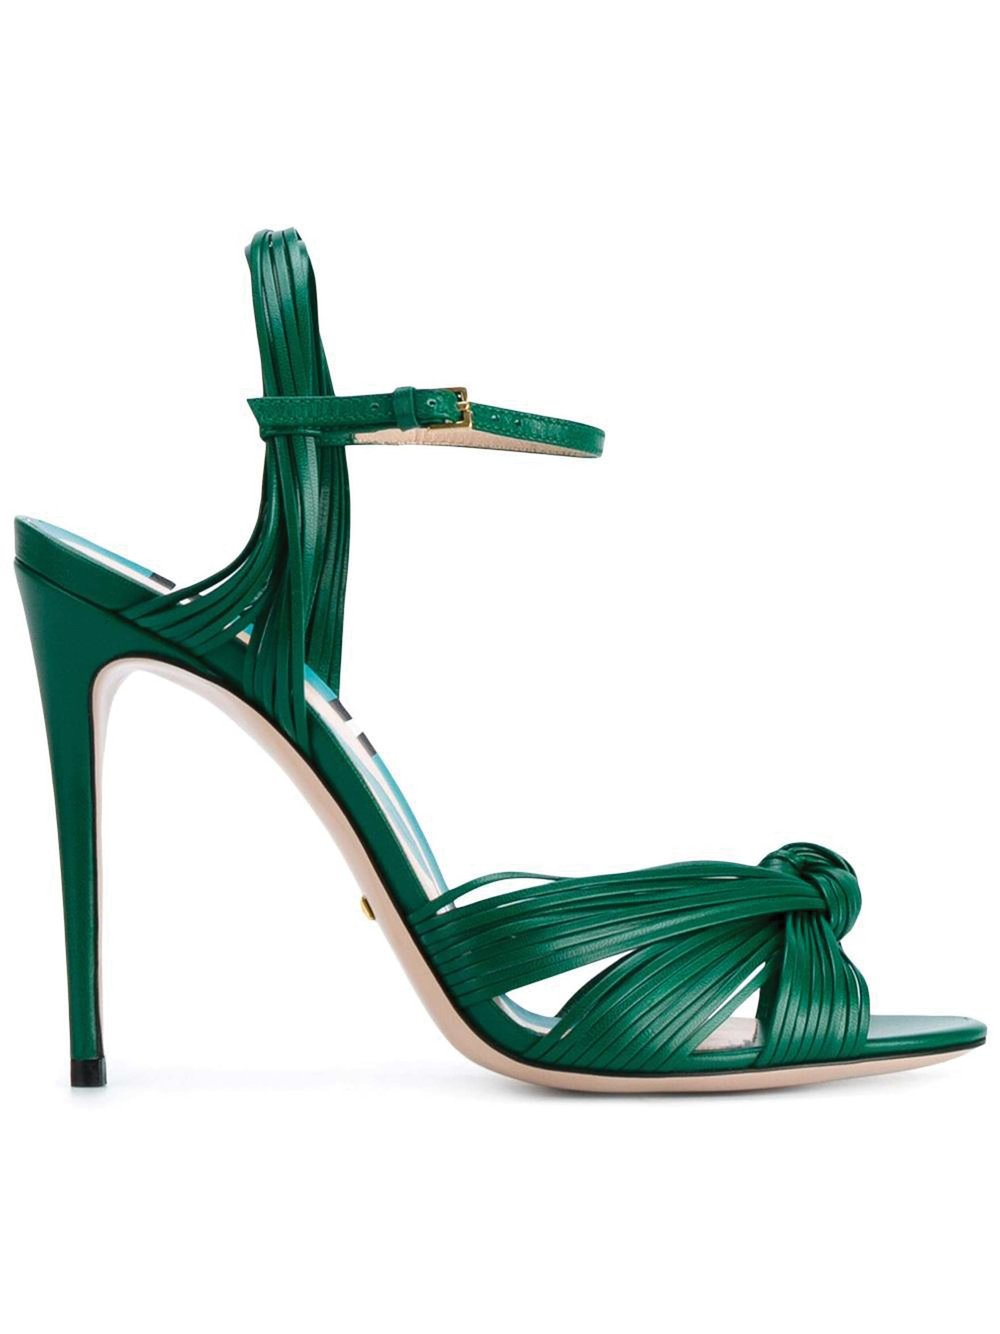 Strappy Sandals by Gucci $950 古奇綁繩涼鞋